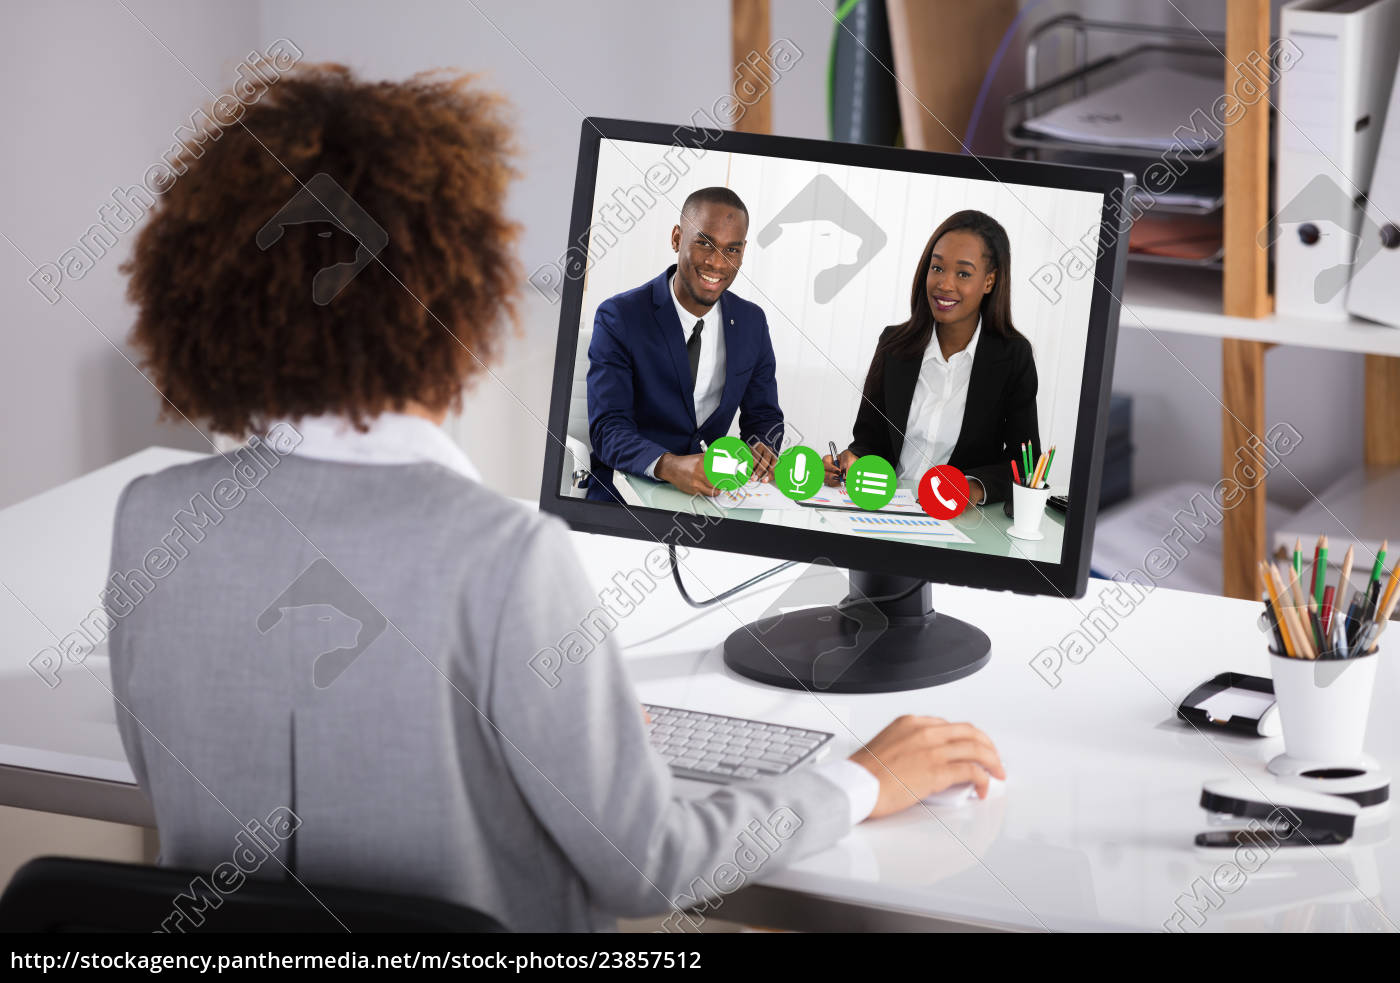 Royalty free photo 23857512 - Businesswoman Video Conferencing Colleagues